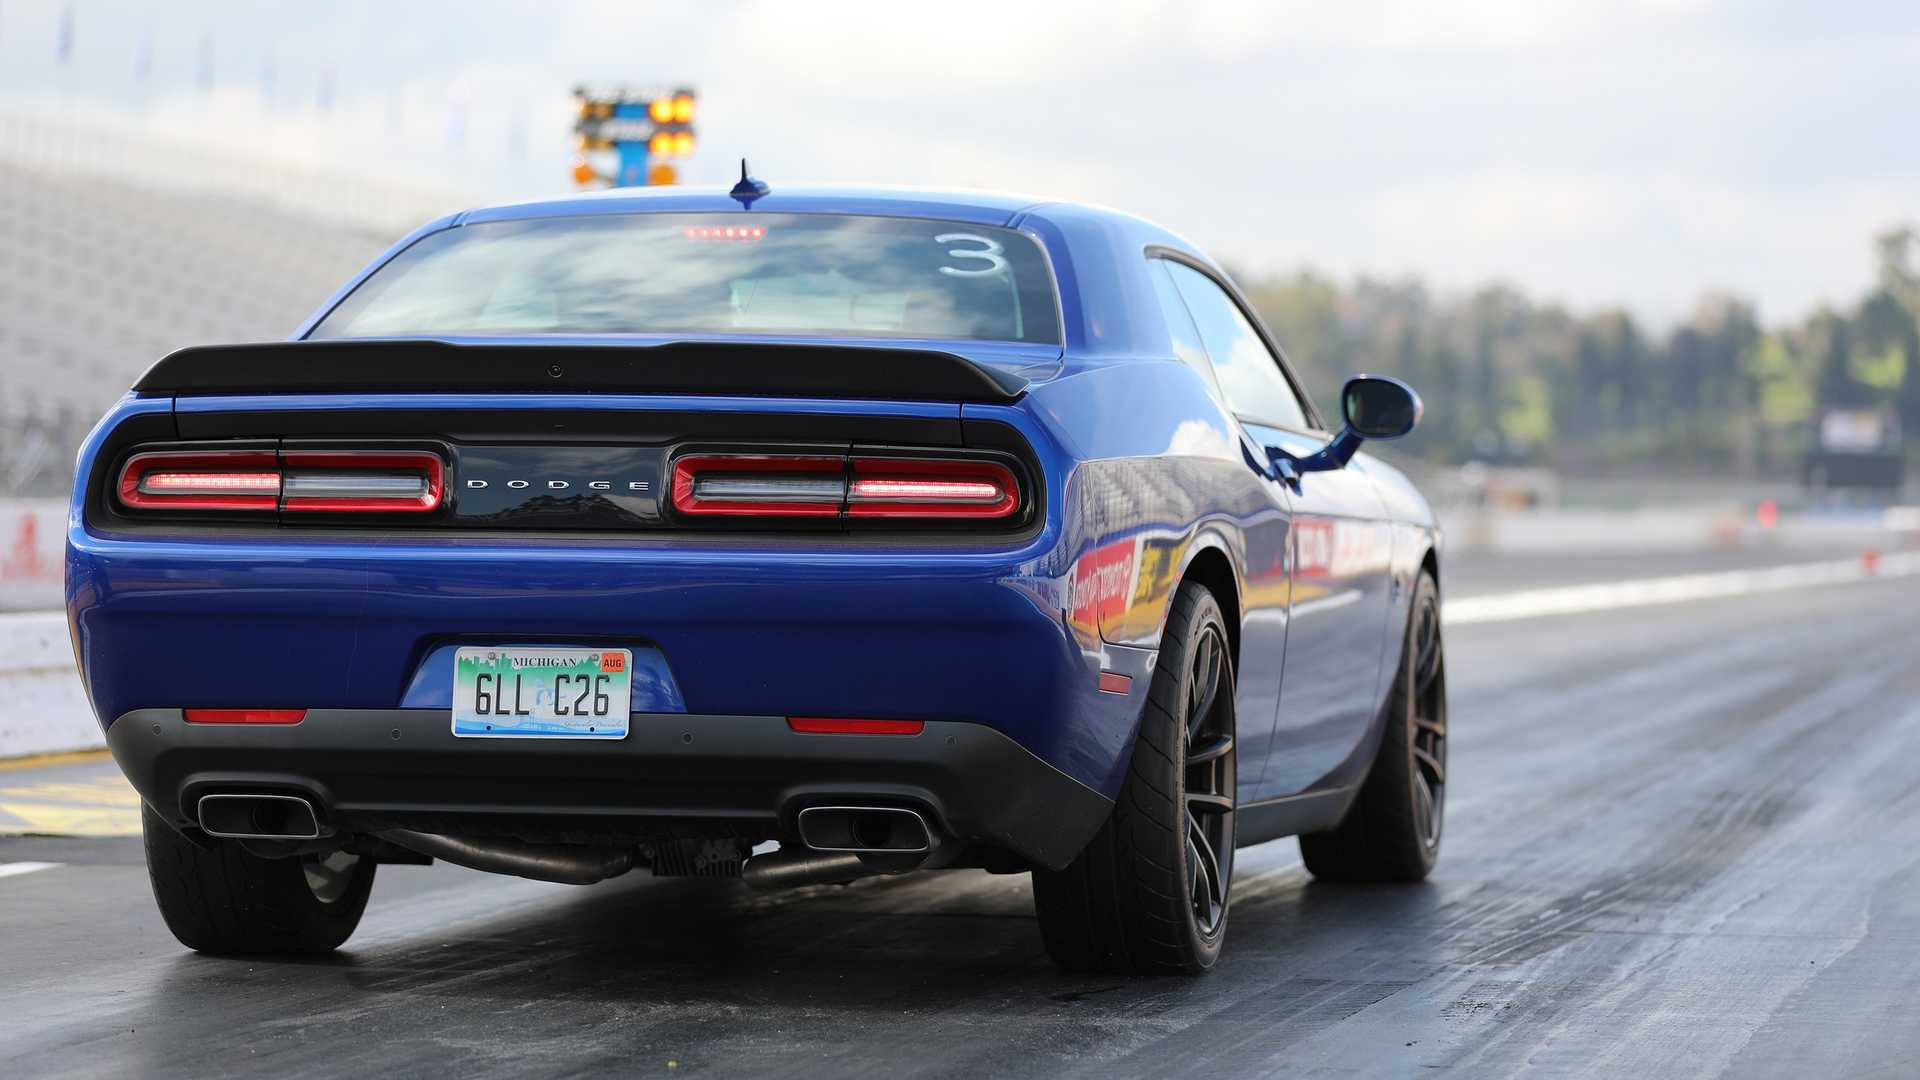 2019 dodge challenger r  t scat pack 1320 is made to race one 1  4-mile at a time